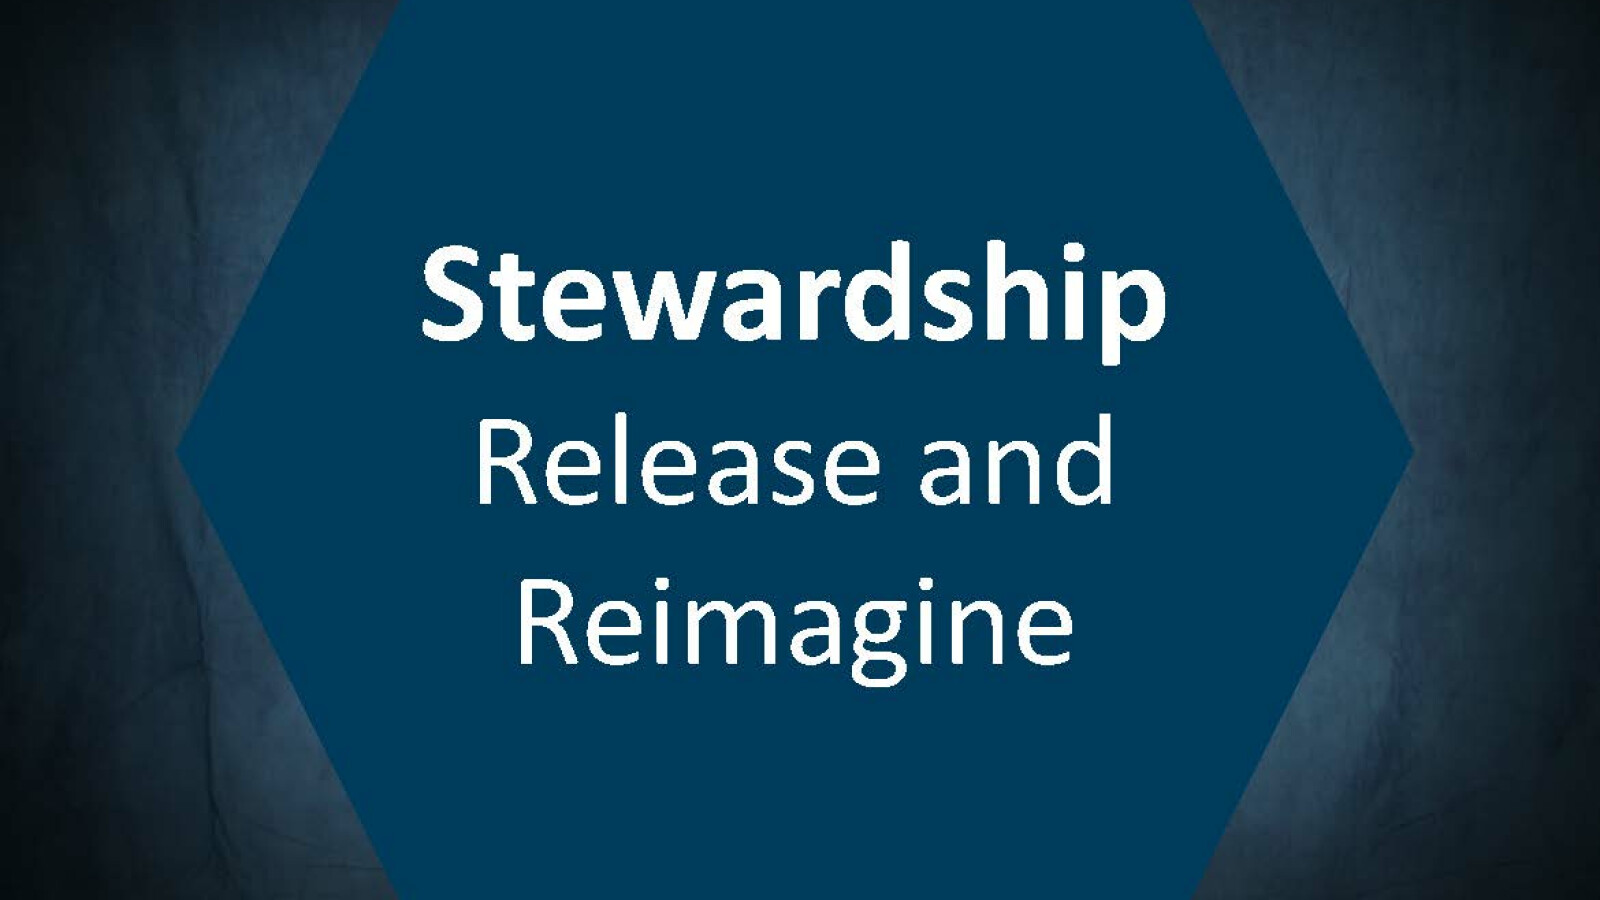 Stewardship - Release and Reimagine